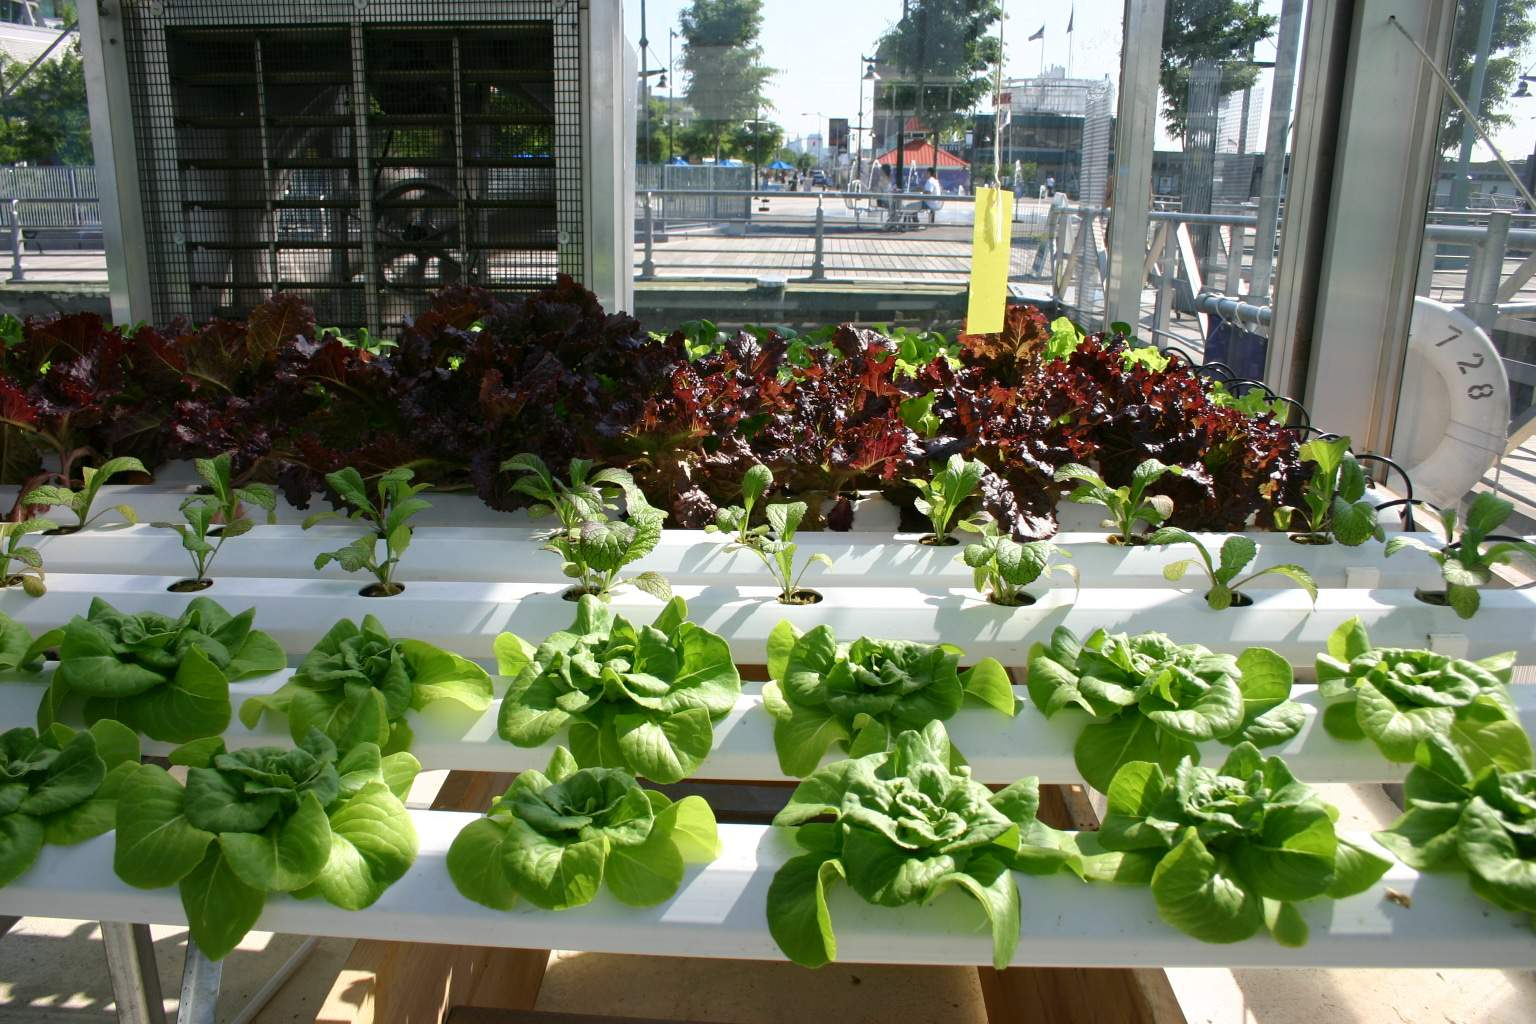 variety of green and red lettuce being grown using hydroponic system